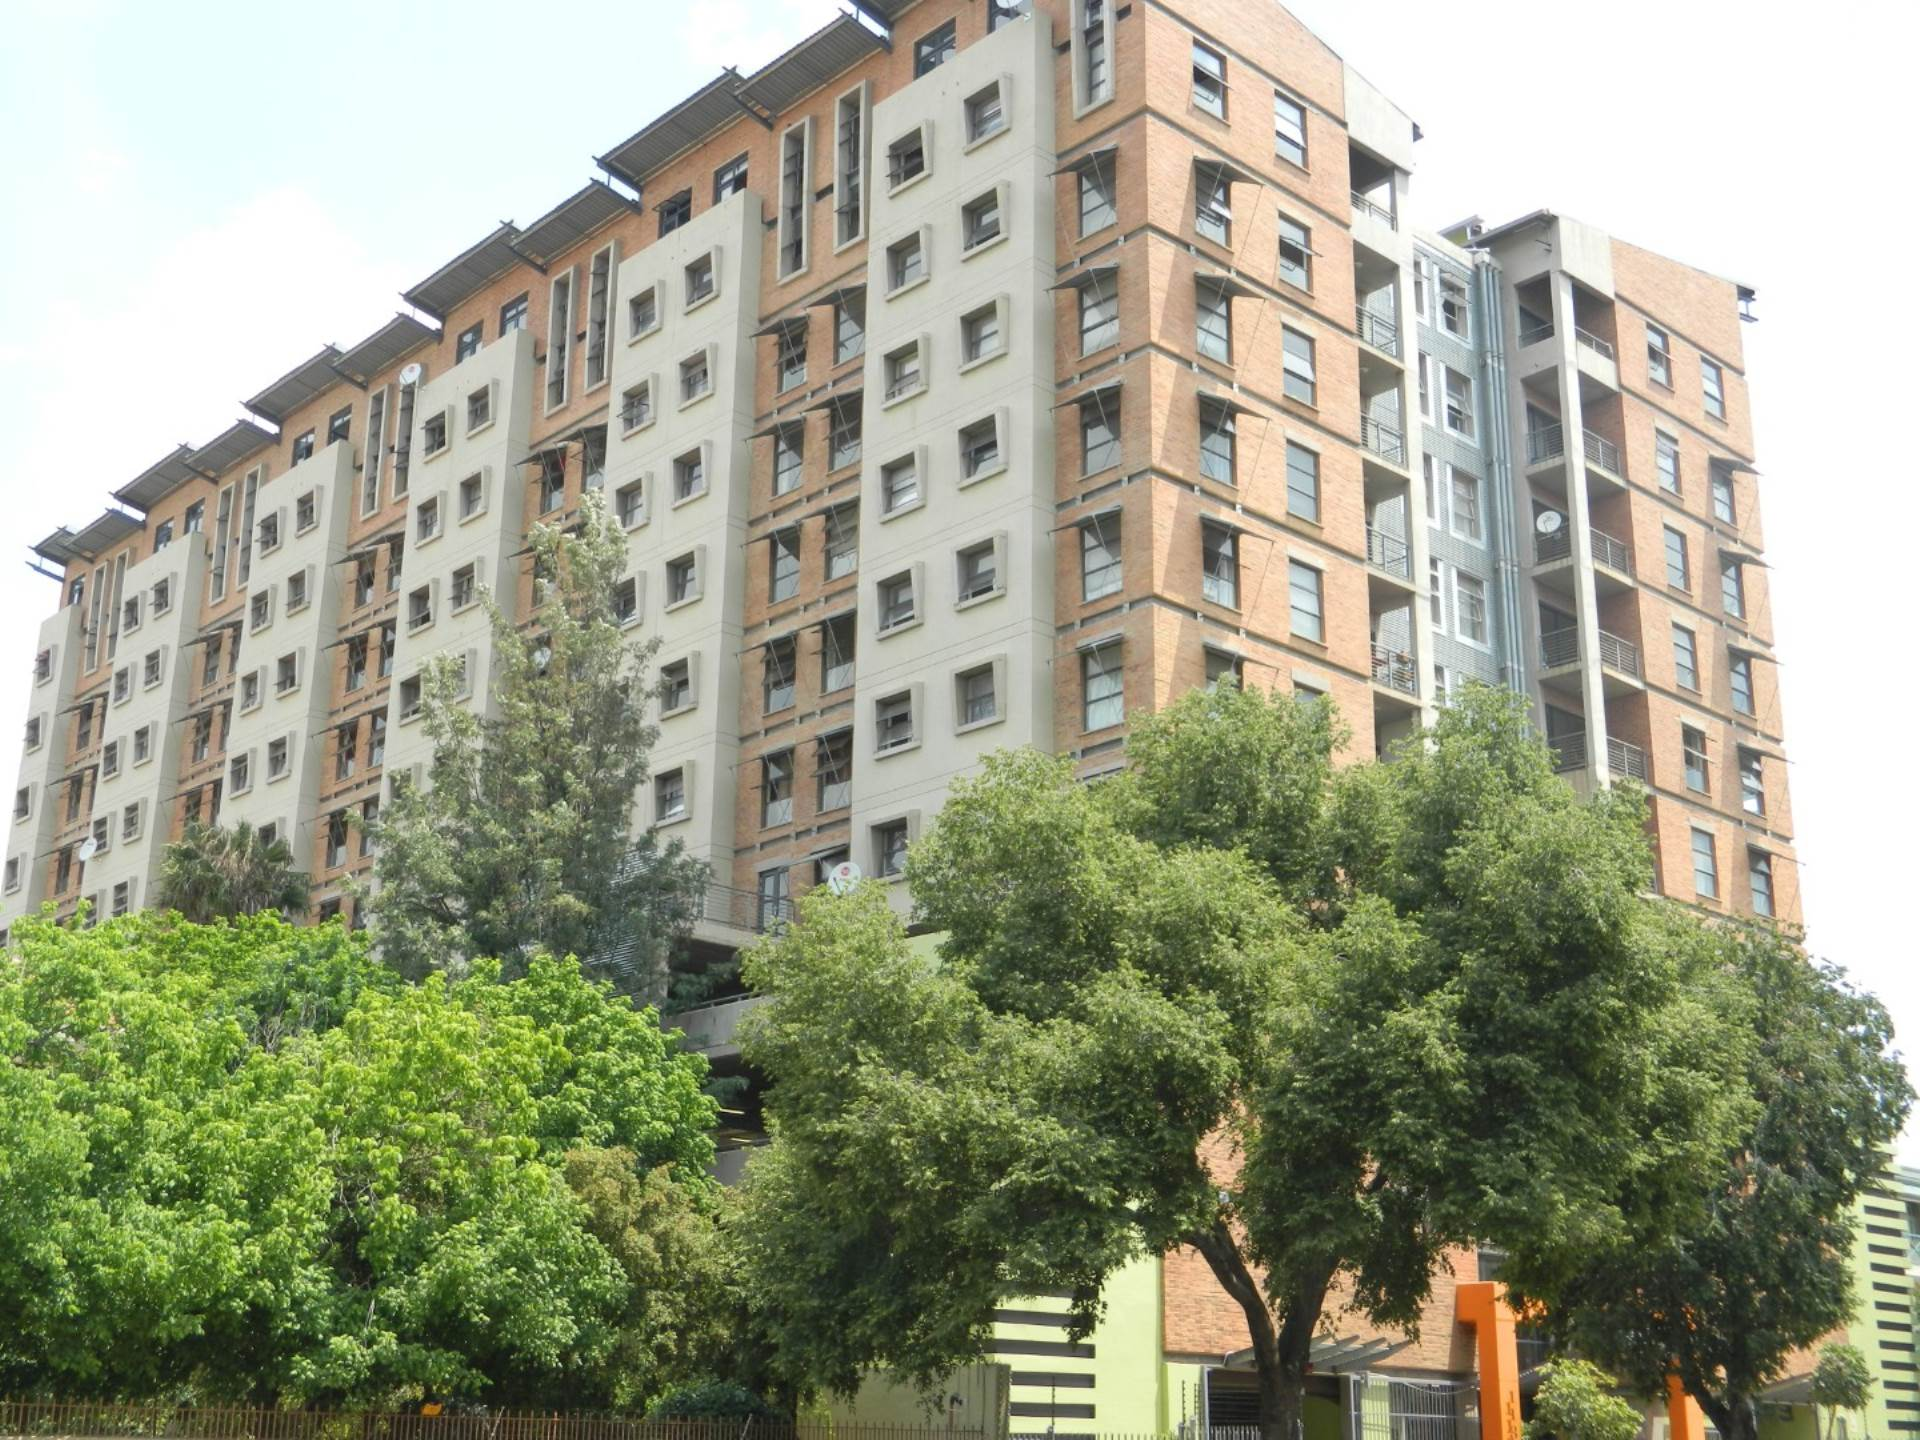 1 BedroomFlat To Rent In Hatfield